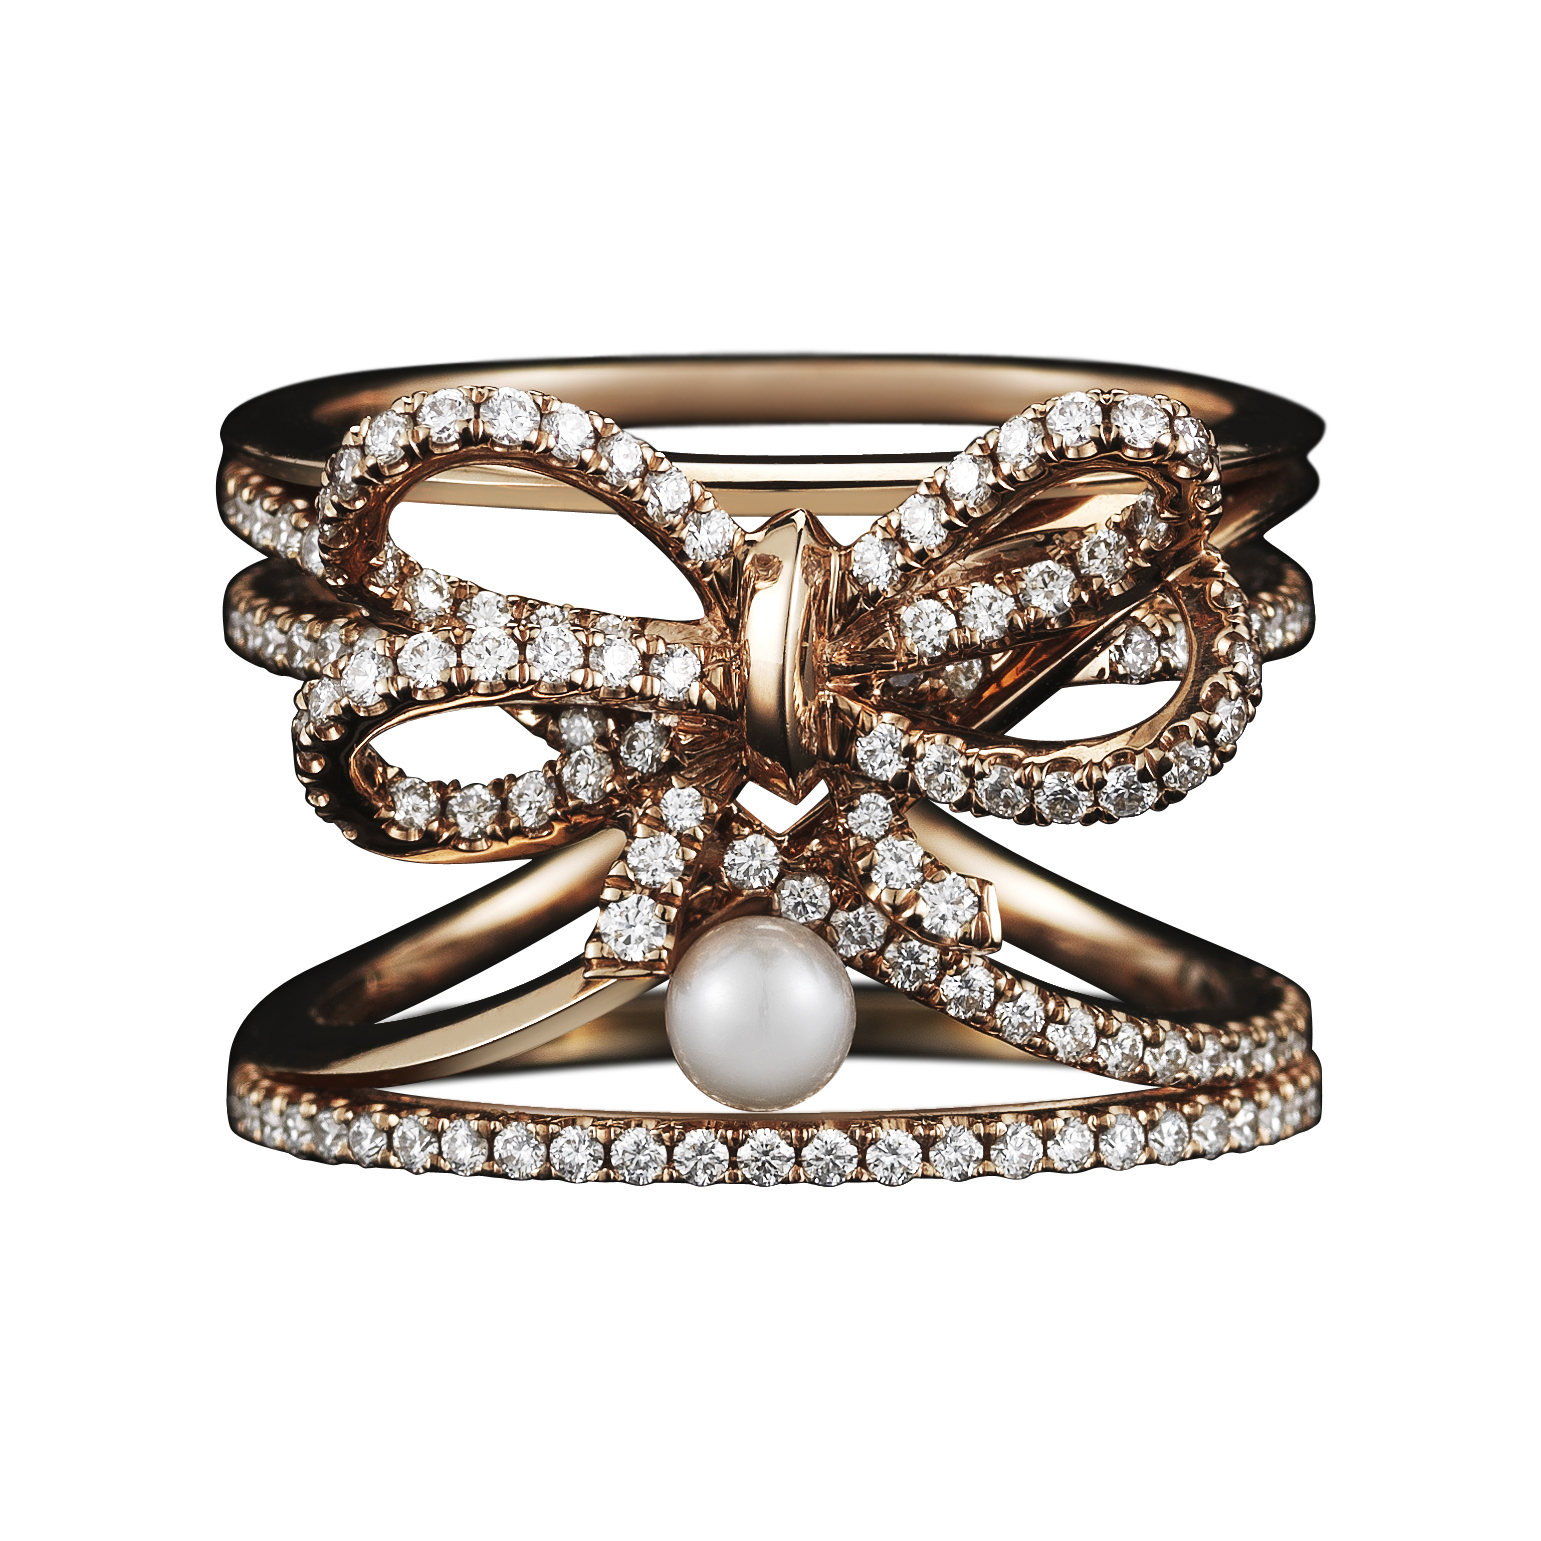 A contemporary Diamond Bow and Pearl ring set with Alexandra Mor signature details of 1mm knife-edged wire and 1mm 'floating' Diamond melee weighing a total of 0.91 carats. 18-karat Rose Gold. Signed by artist. Crafted in the USA. Limited Edition 1/15